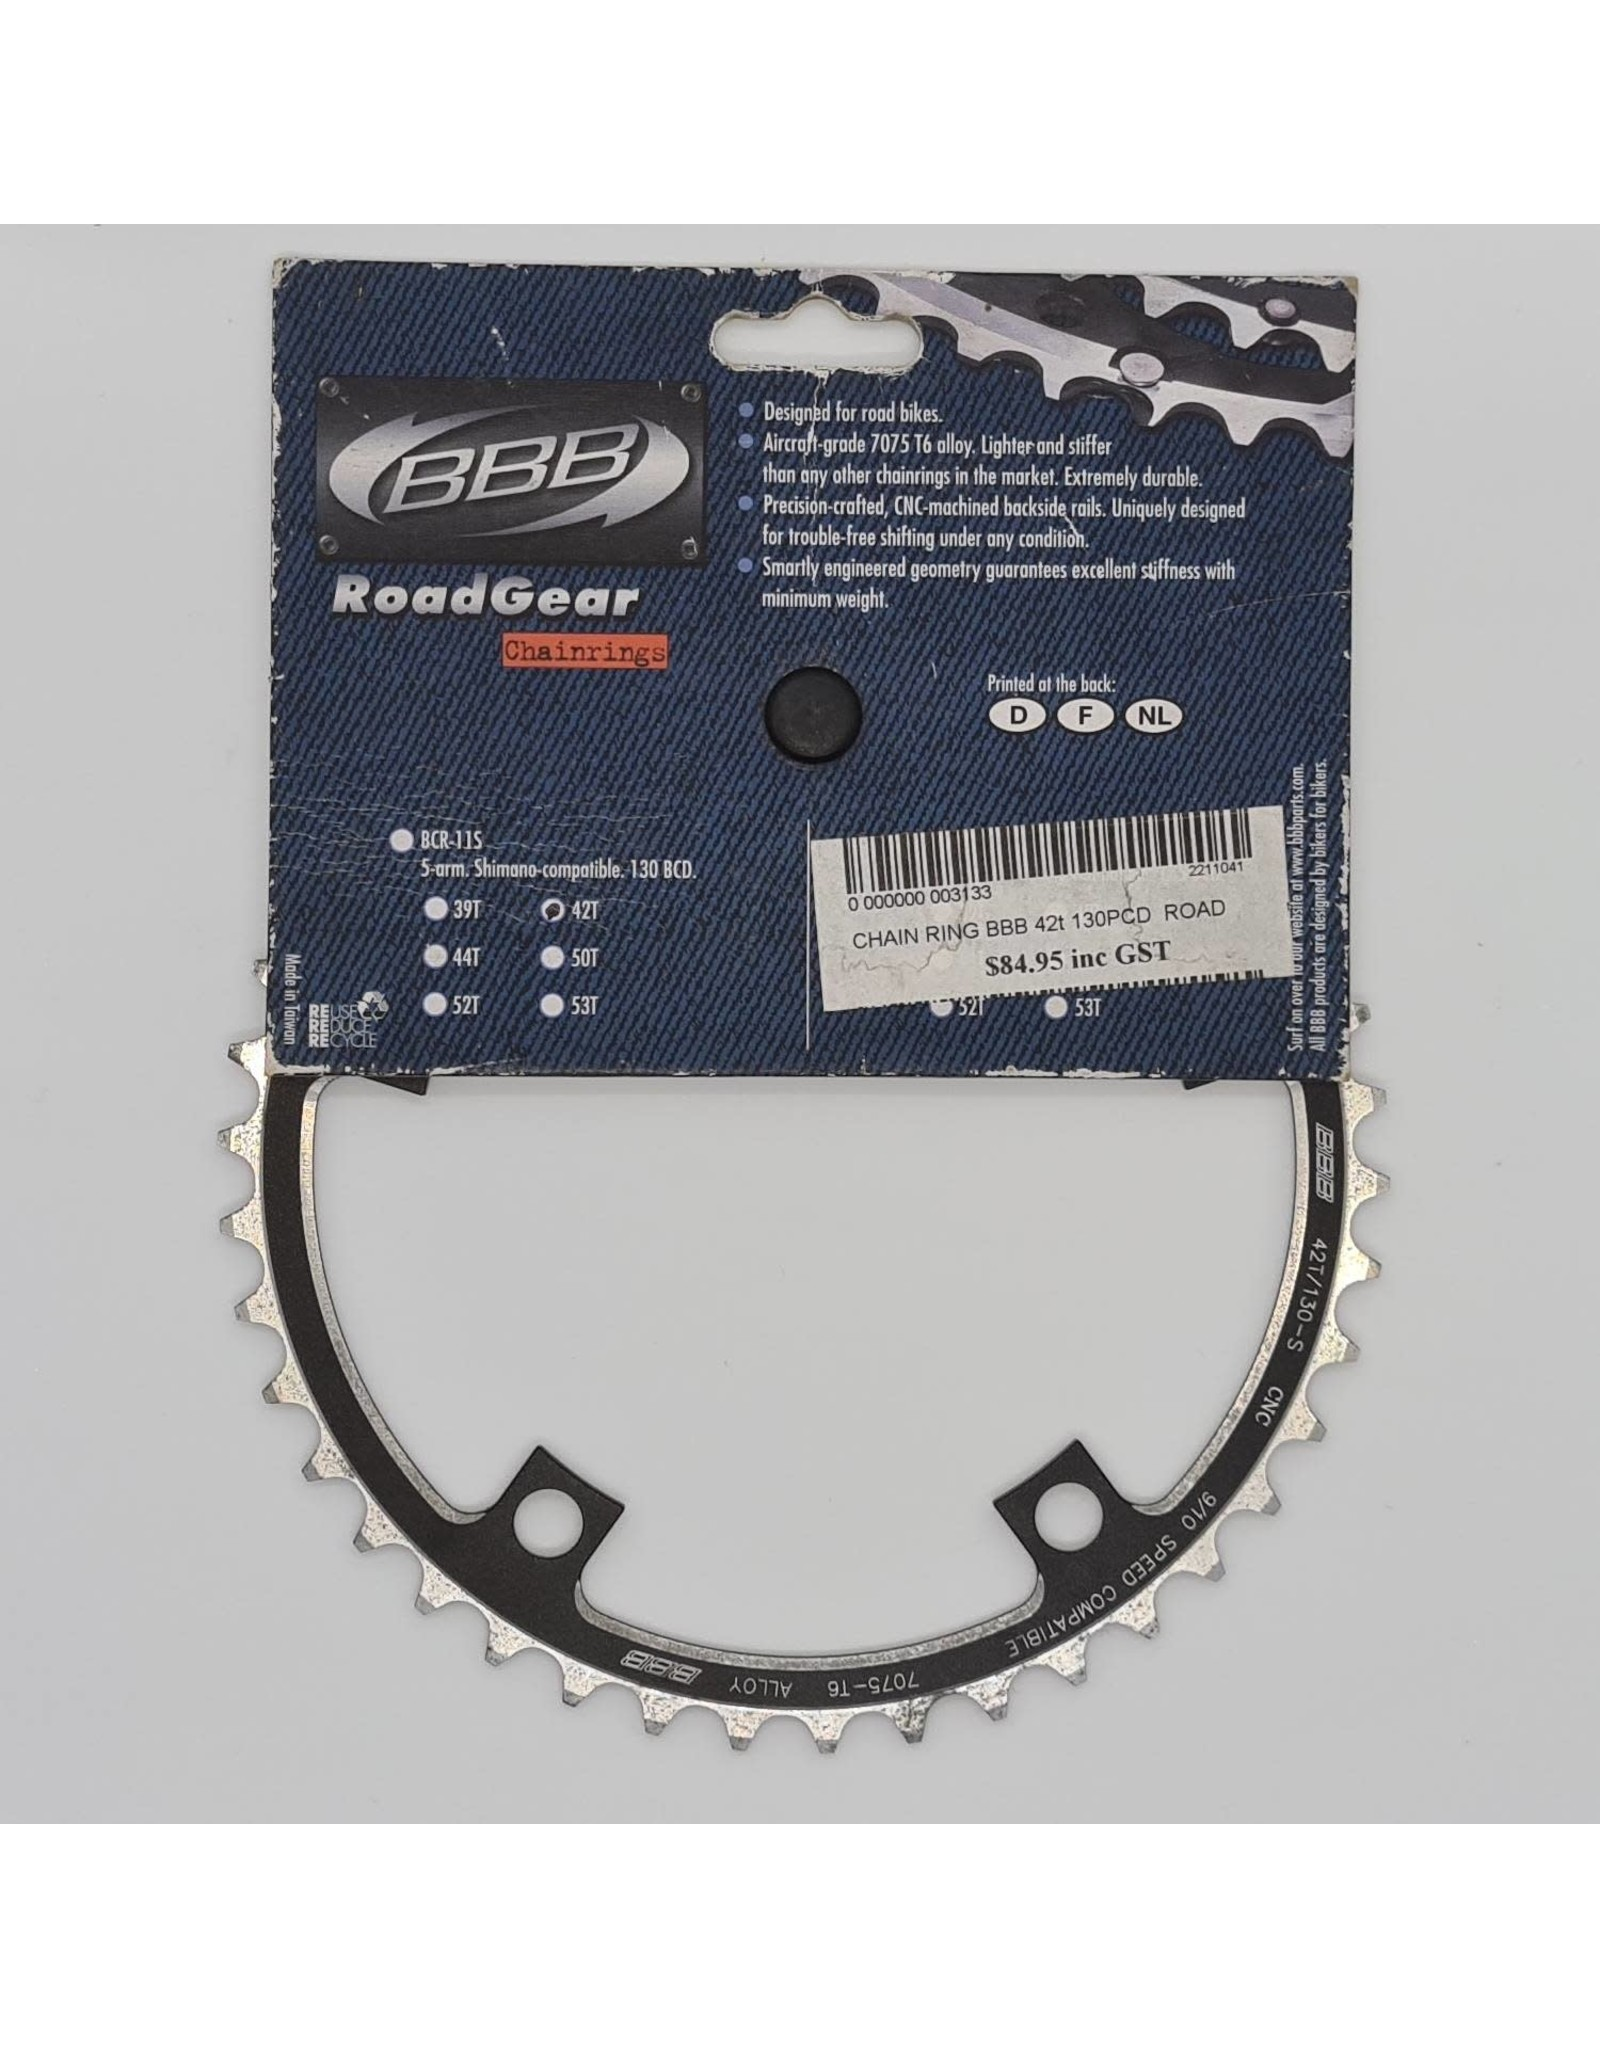 BBB CLEARANCE ROADGEAR CHAIN RING 42/130